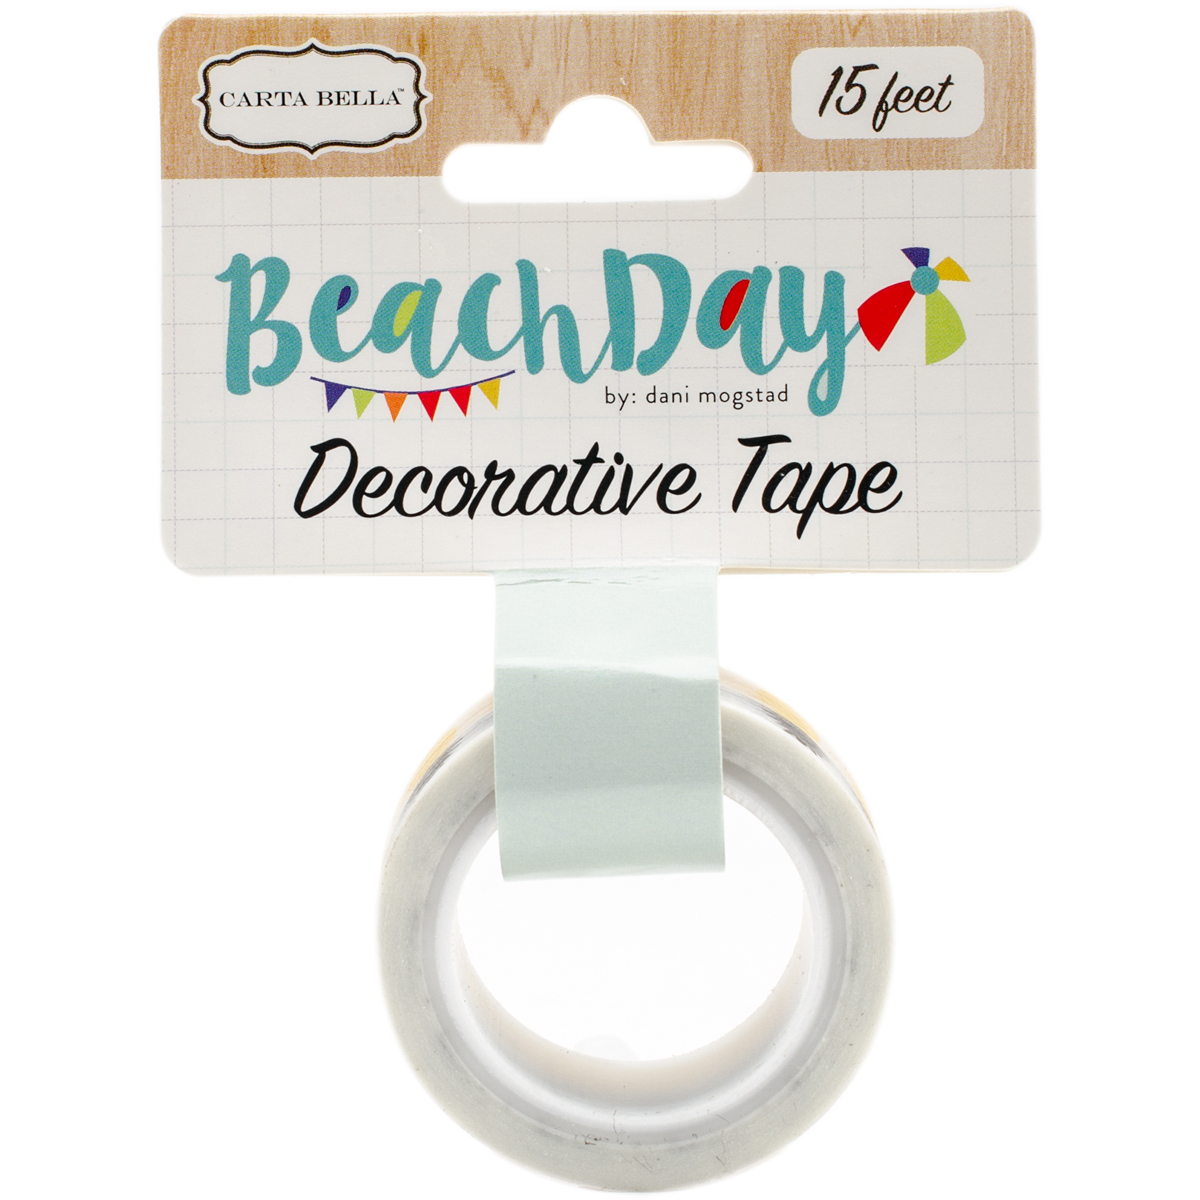 Beach Day Decorative Tape-Pineapple